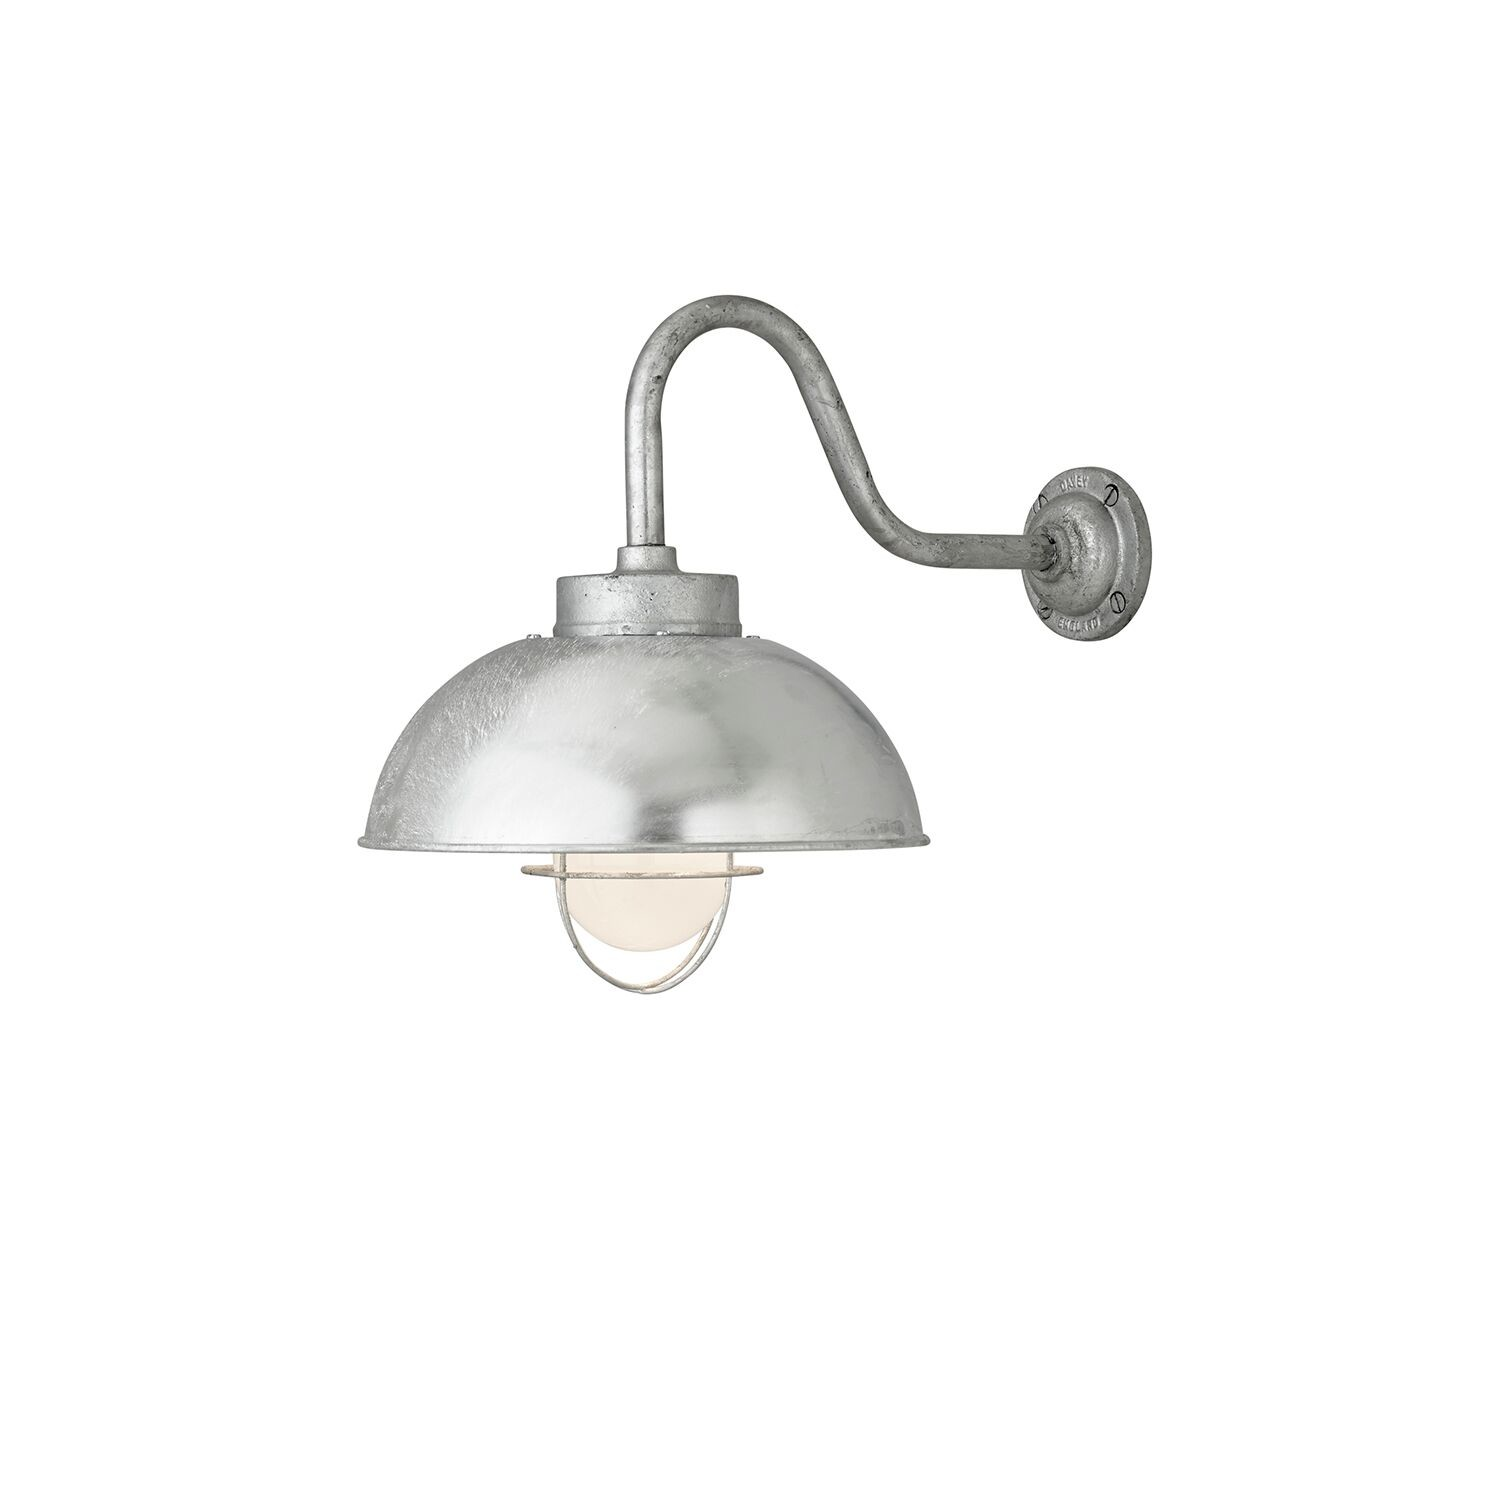 Shipyard Wall Light 7222 Galvanised silver, Frosted glass